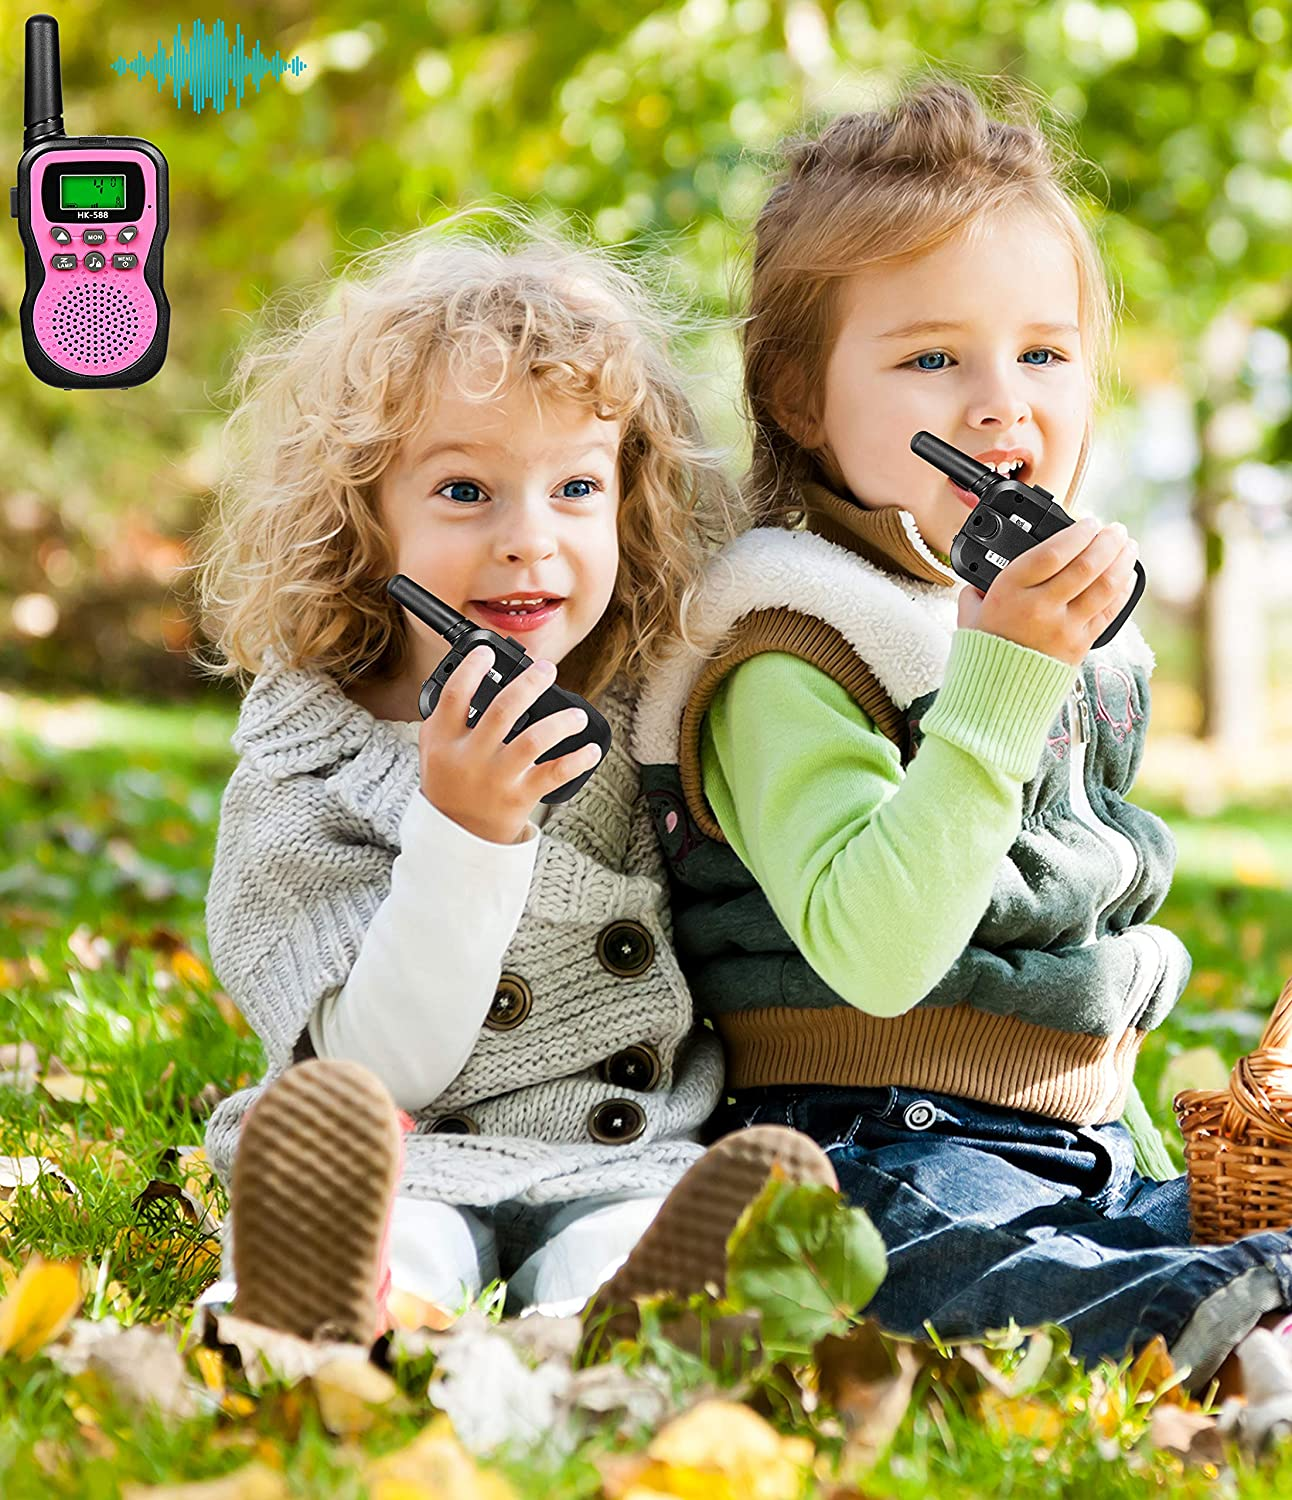 Green Best Gifts for Kid JRD/&BS WINL Toys Walkie Talkies for Kid,Fun Toys for 4-5 Year Old Boys,Kid Toys for 6-10 Year Old Travel Hunting,HK-588 1 Pair